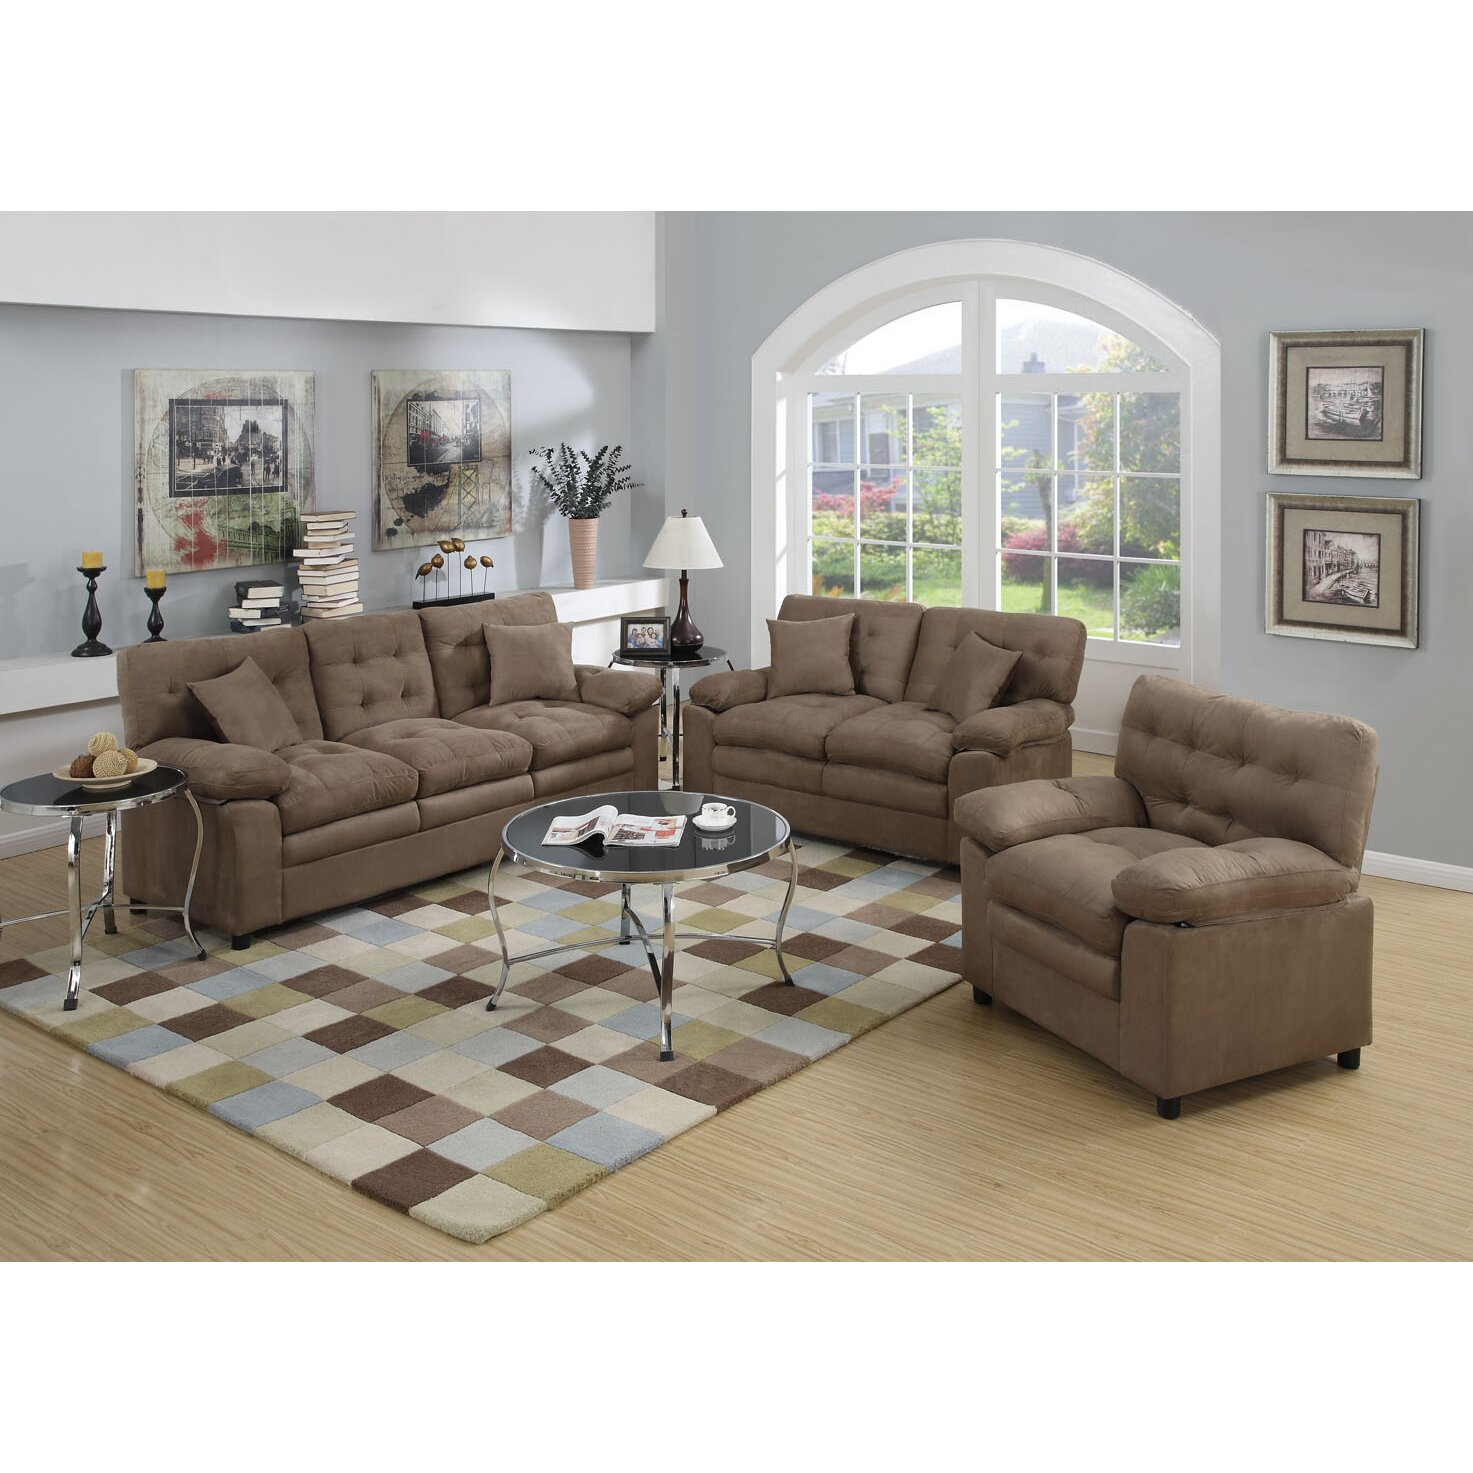 Poundex bobkona colona 3 piece living room set reviews for The living room sofas